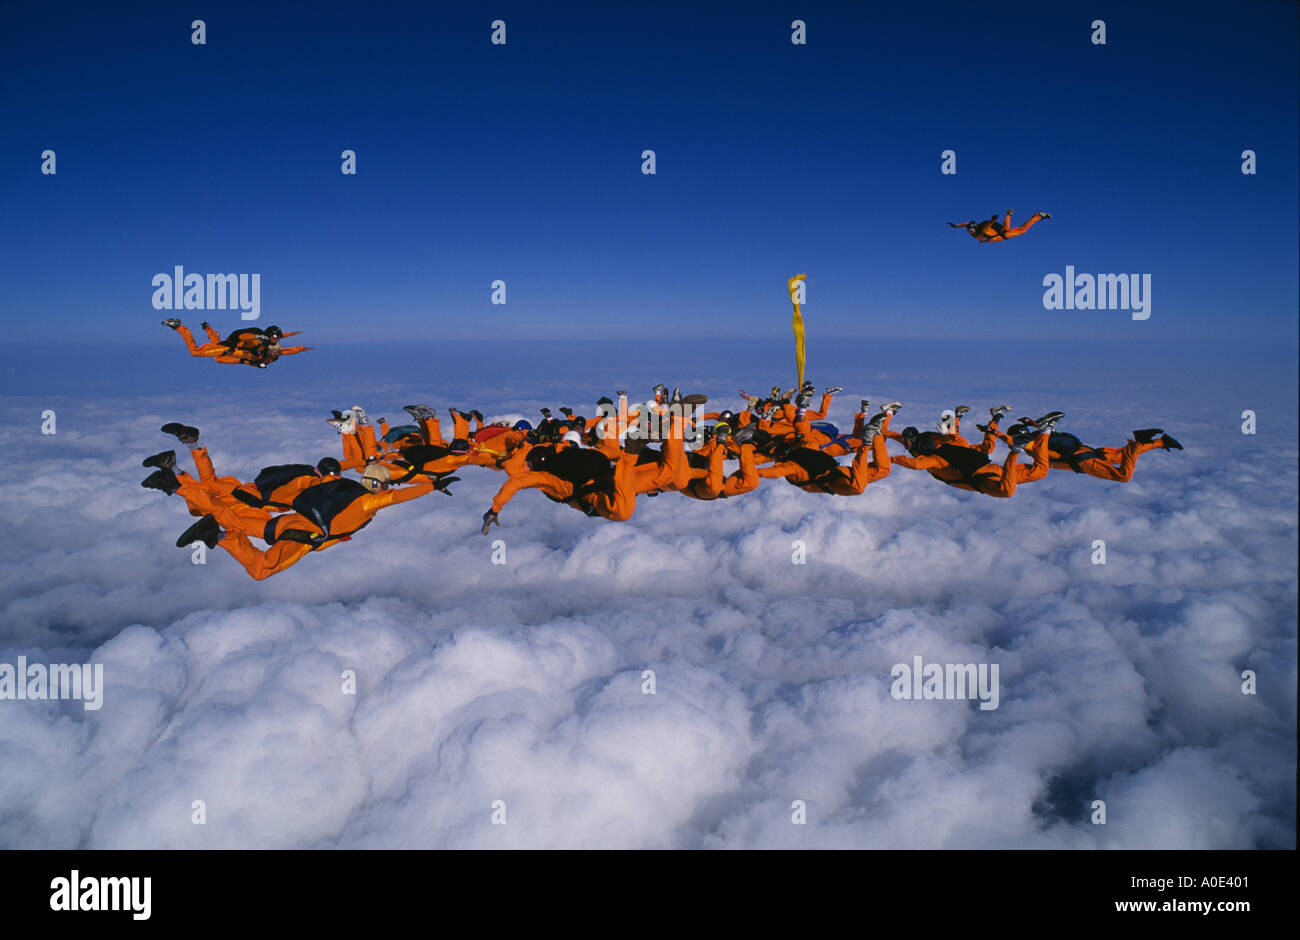 Freefall formation above the clouds - Stock Image